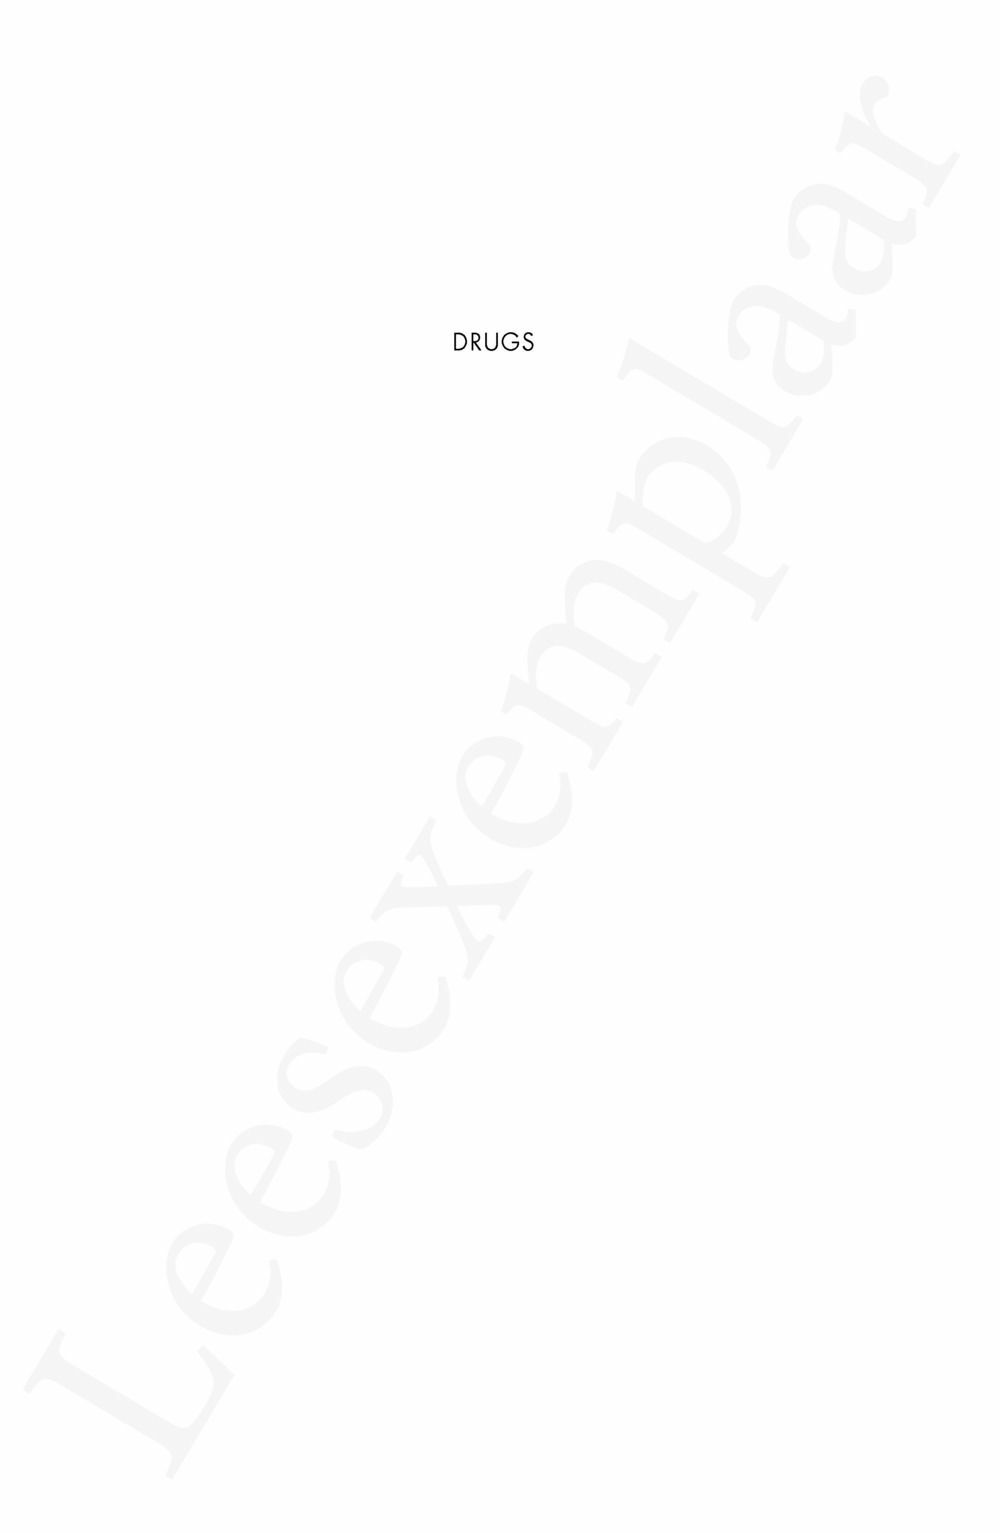 Preview: Drugs